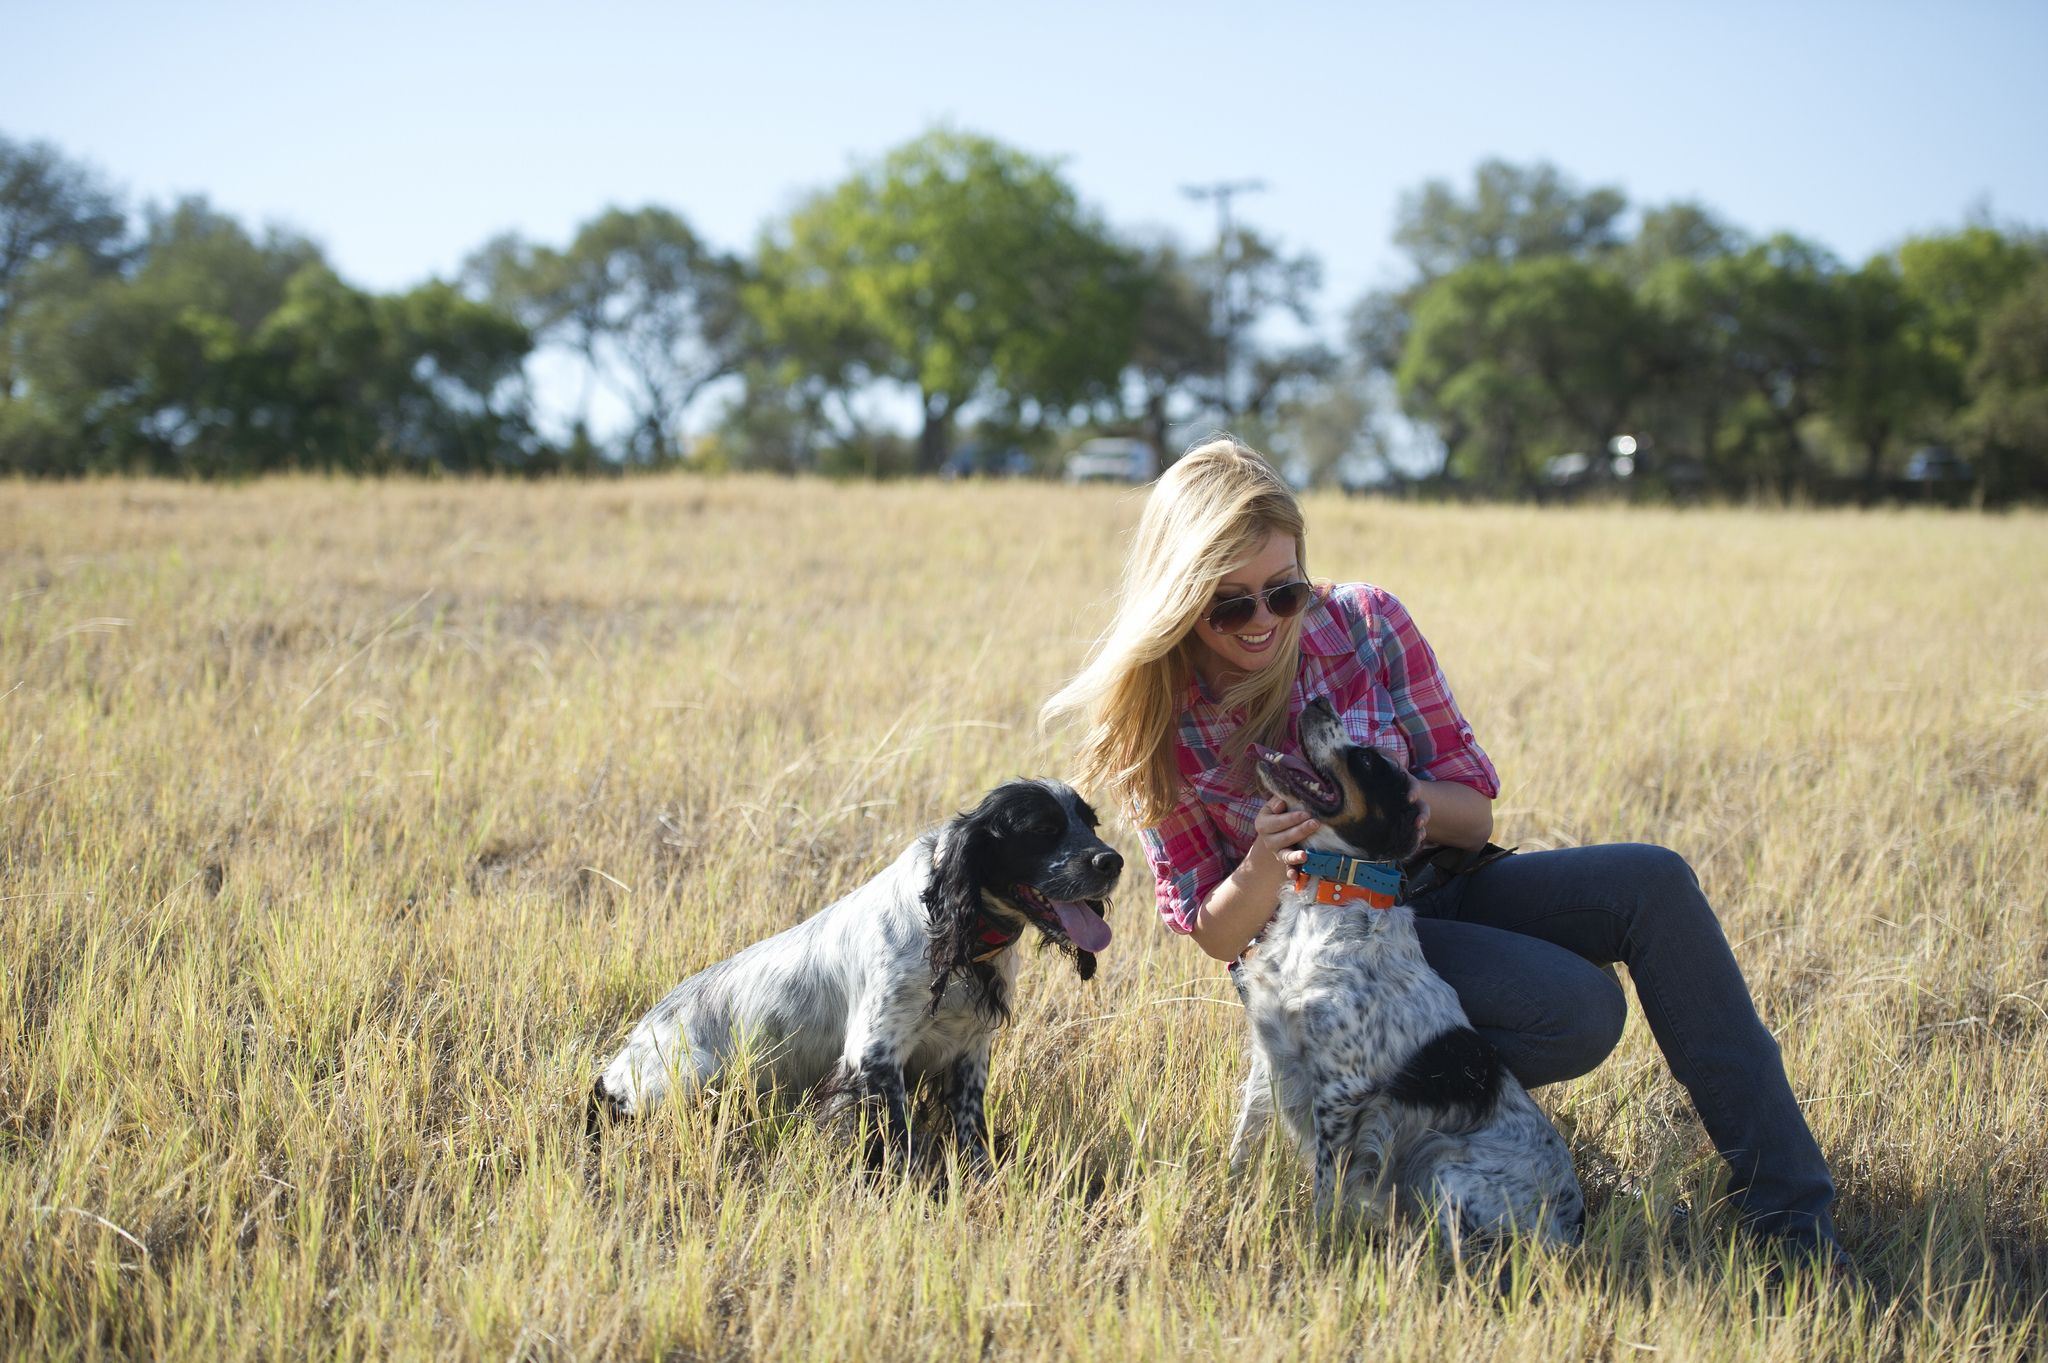 Georgia Pellegrini With Dogs Dogs Hunting Dogs Dog Games